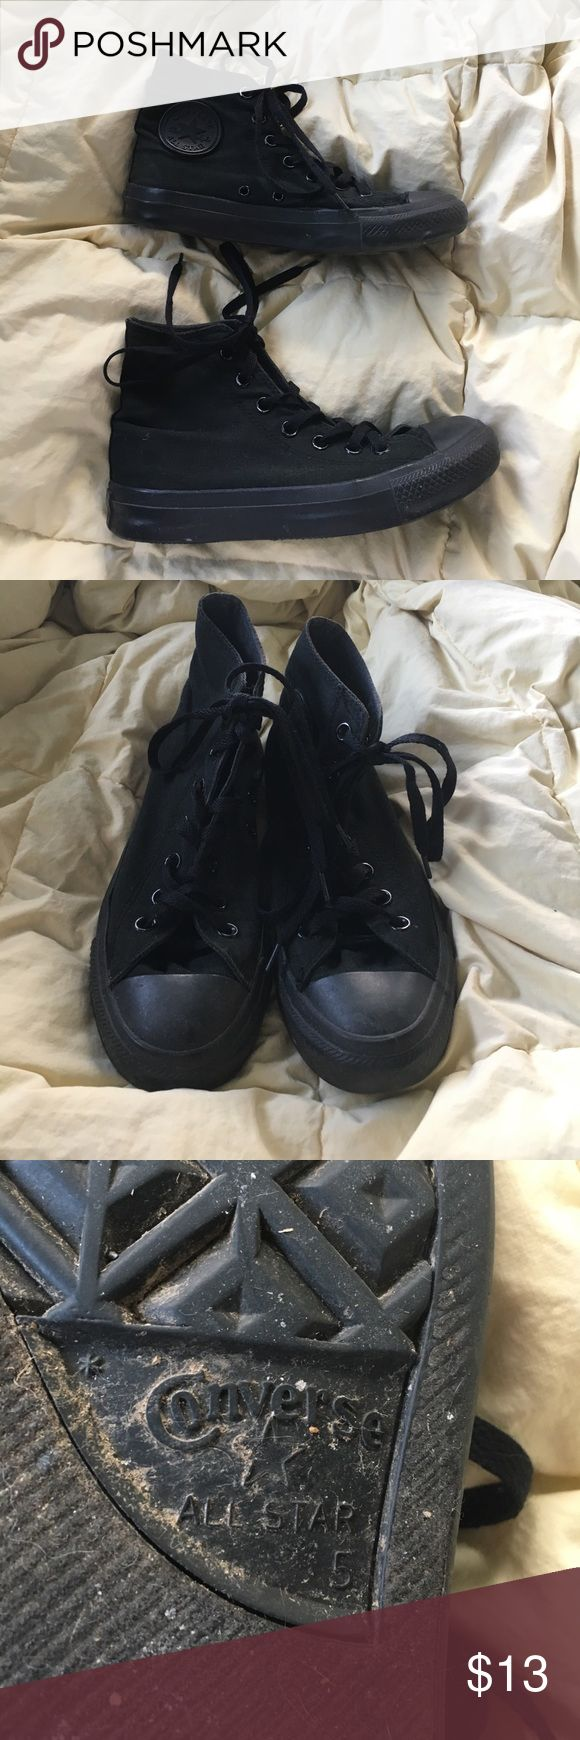 Black High Top Converse No trades. Size mens 5 or womens 7. All black high top converse. Worn a lot but are in great shape. Doesn't come with original box. Converse Shoes Sneakers